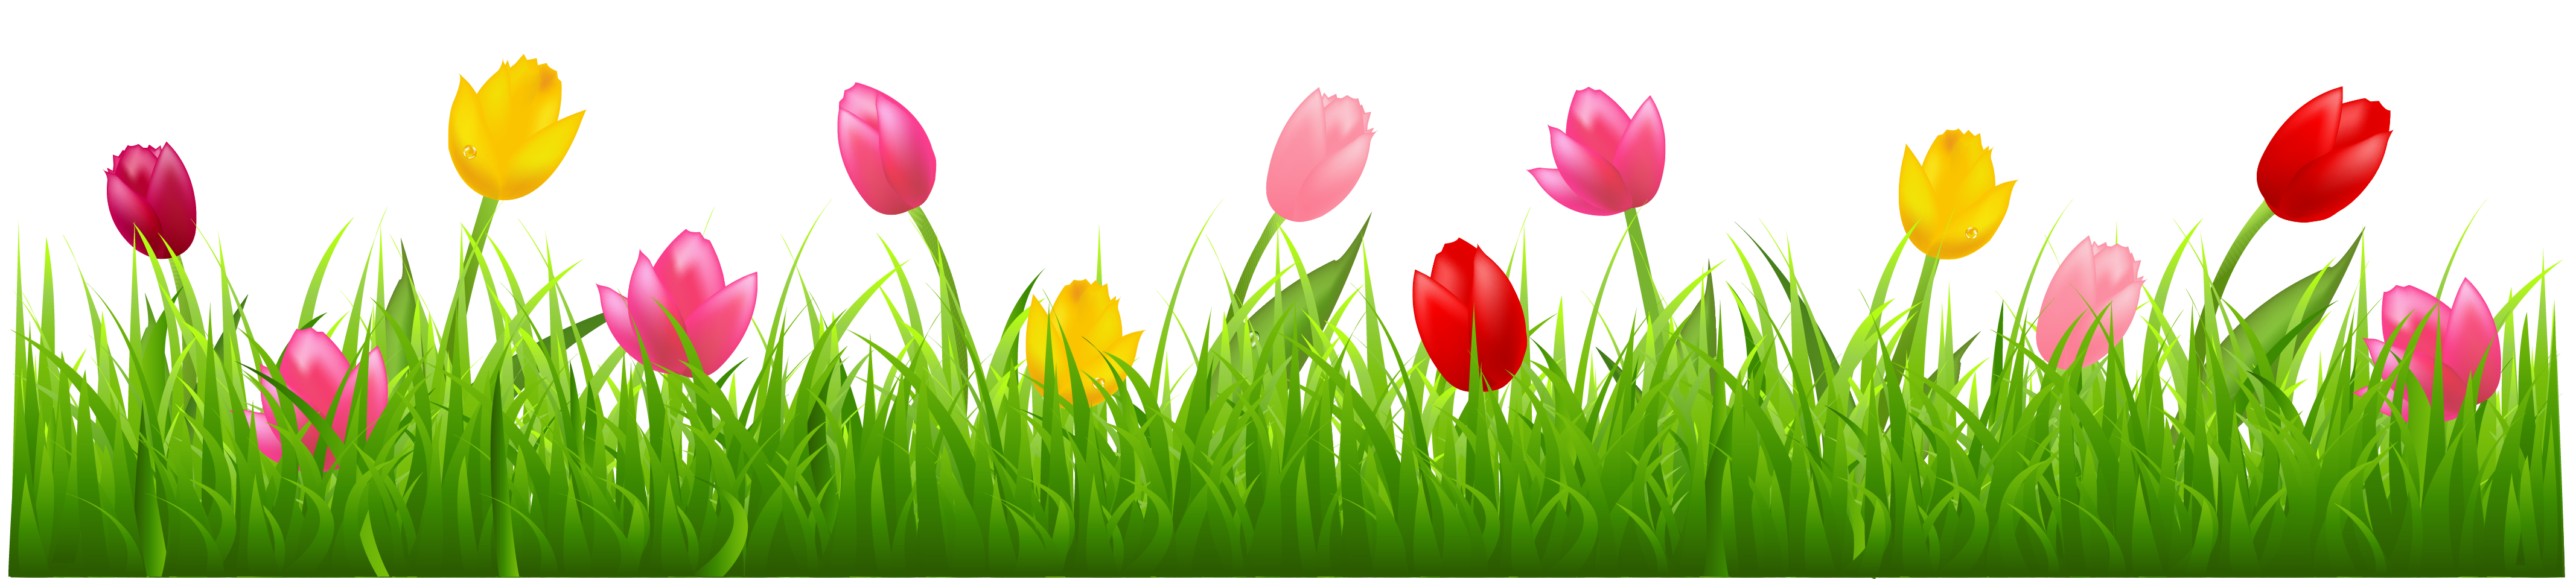 Row of flowers png. Grass with colorful tulips